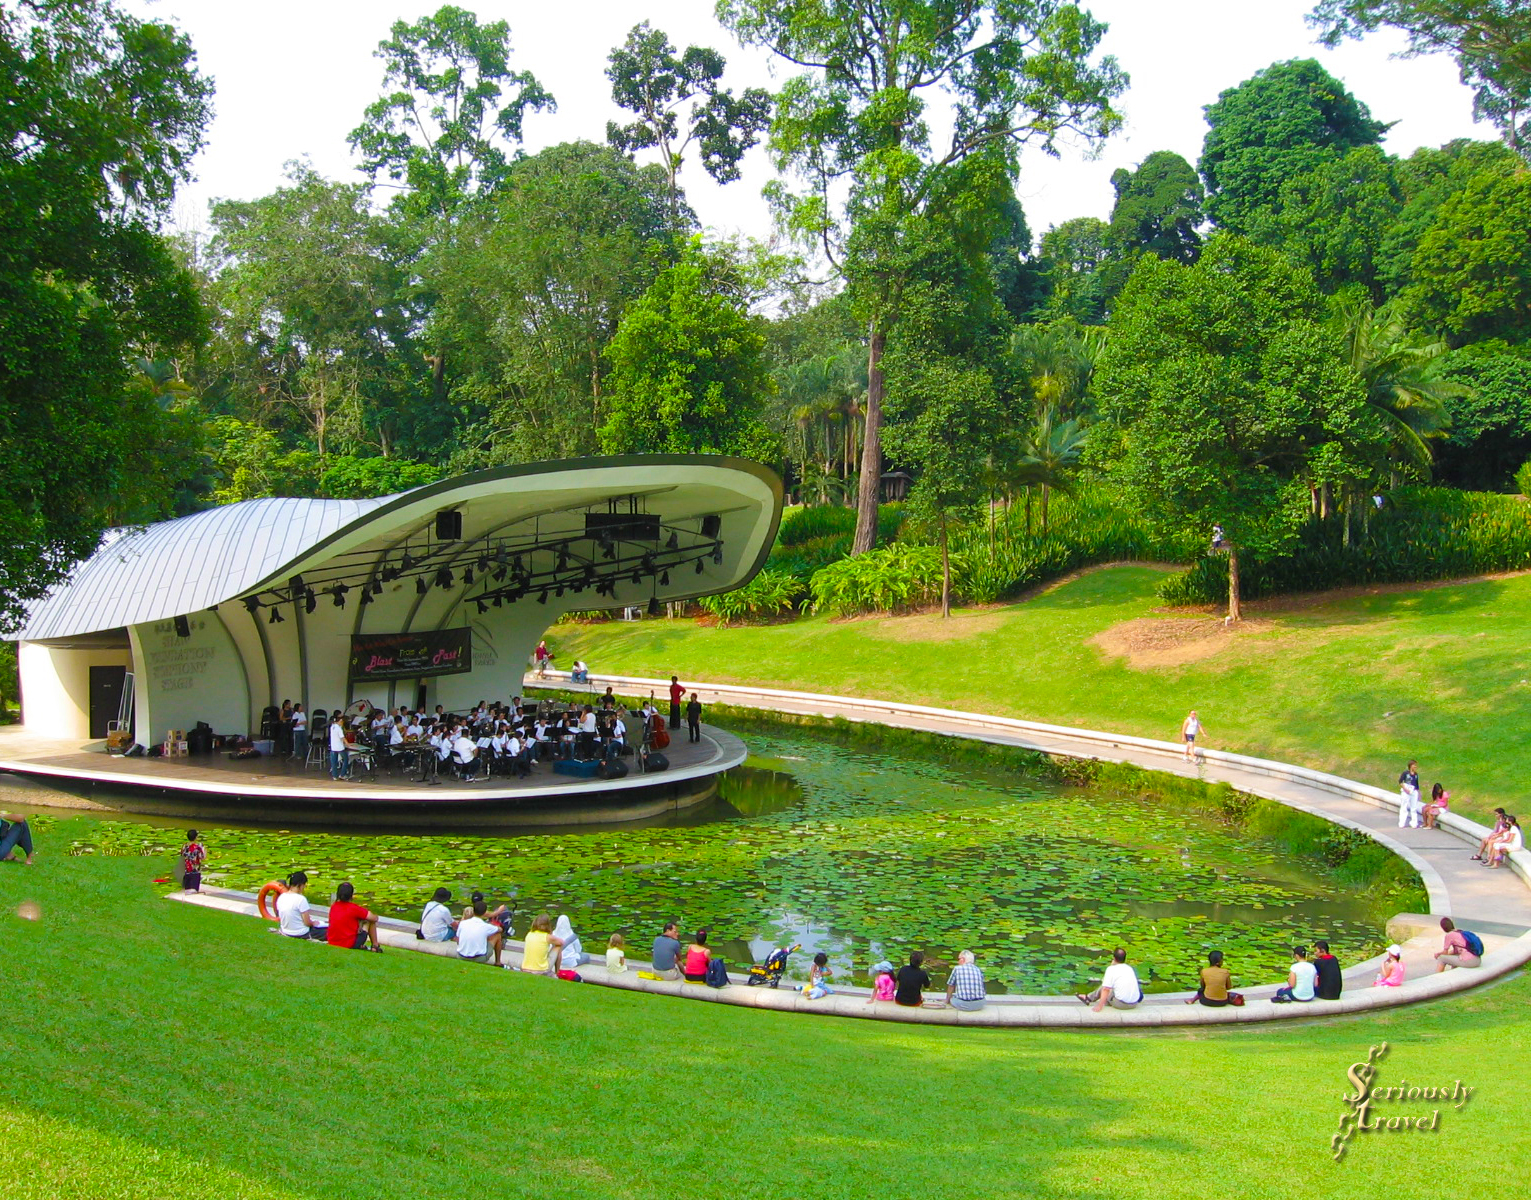 TRUE GARDEN OF EDEN – SINGAPORE'S BOTANICAL GARDEN PHOTO ESSAY